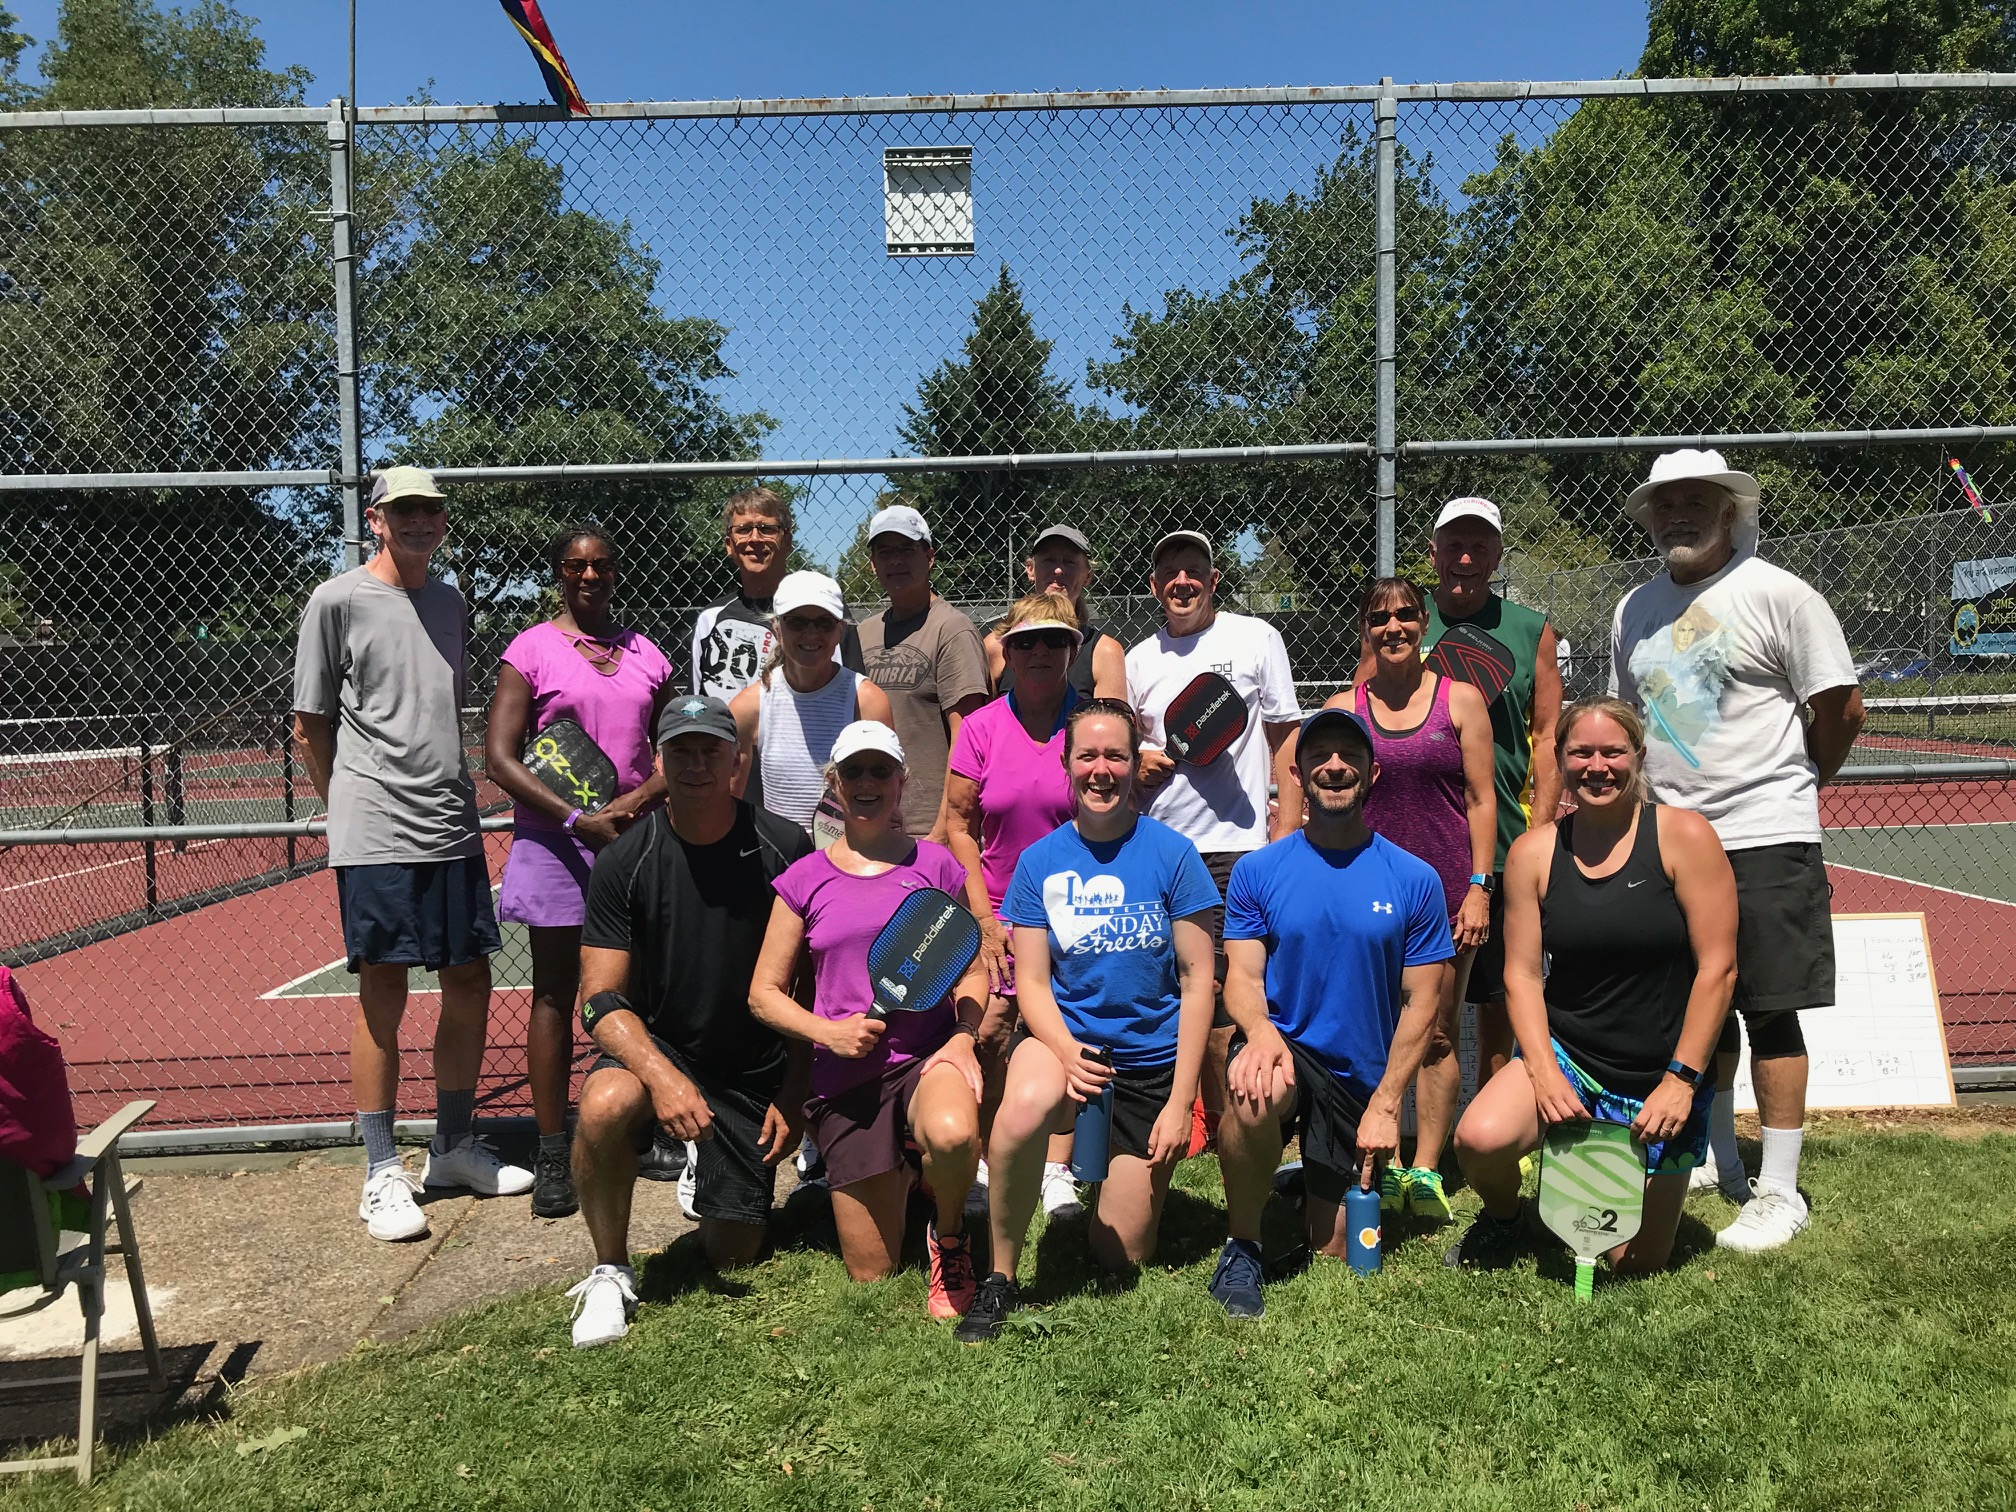 Mixed Doubles 4.0/4.5+ Players